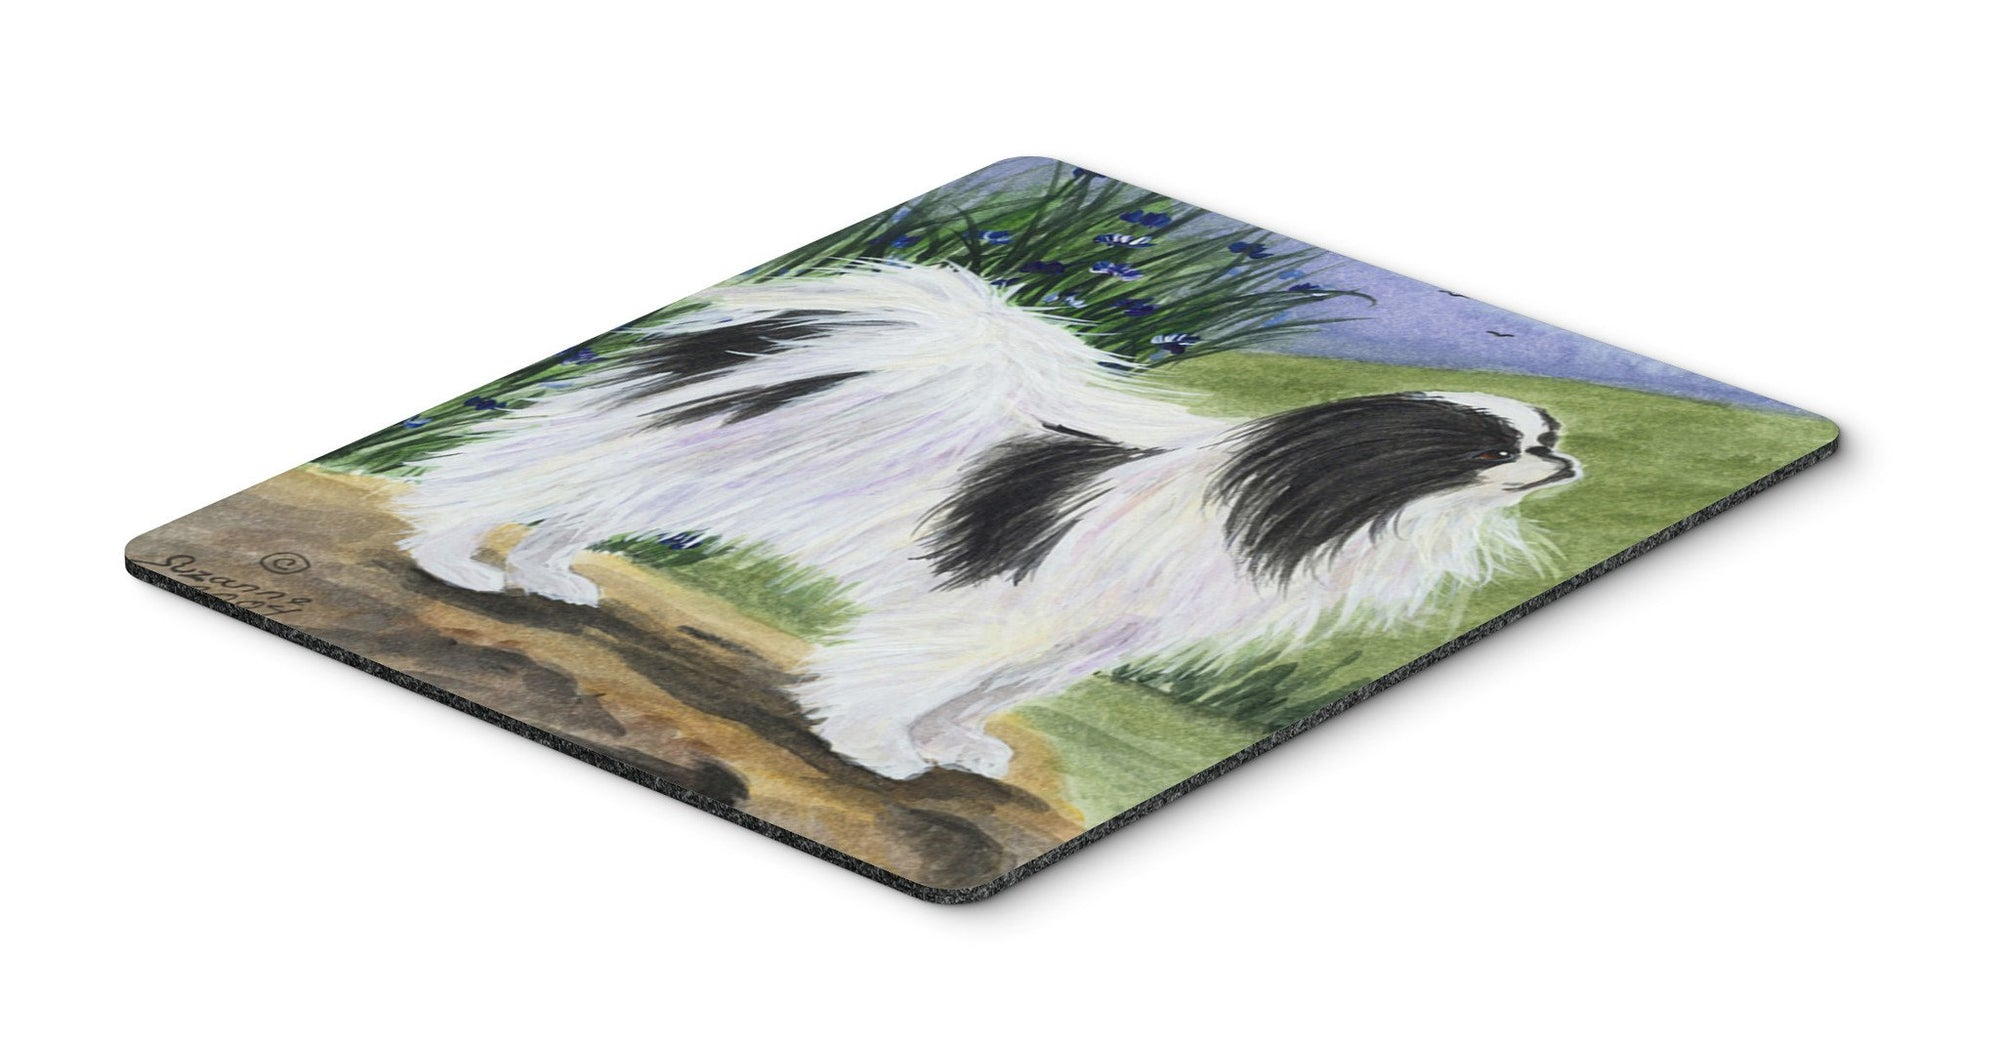 Japanese Chin Mouse Pad / Hot Pad / Trivet by Caroline's Treasures